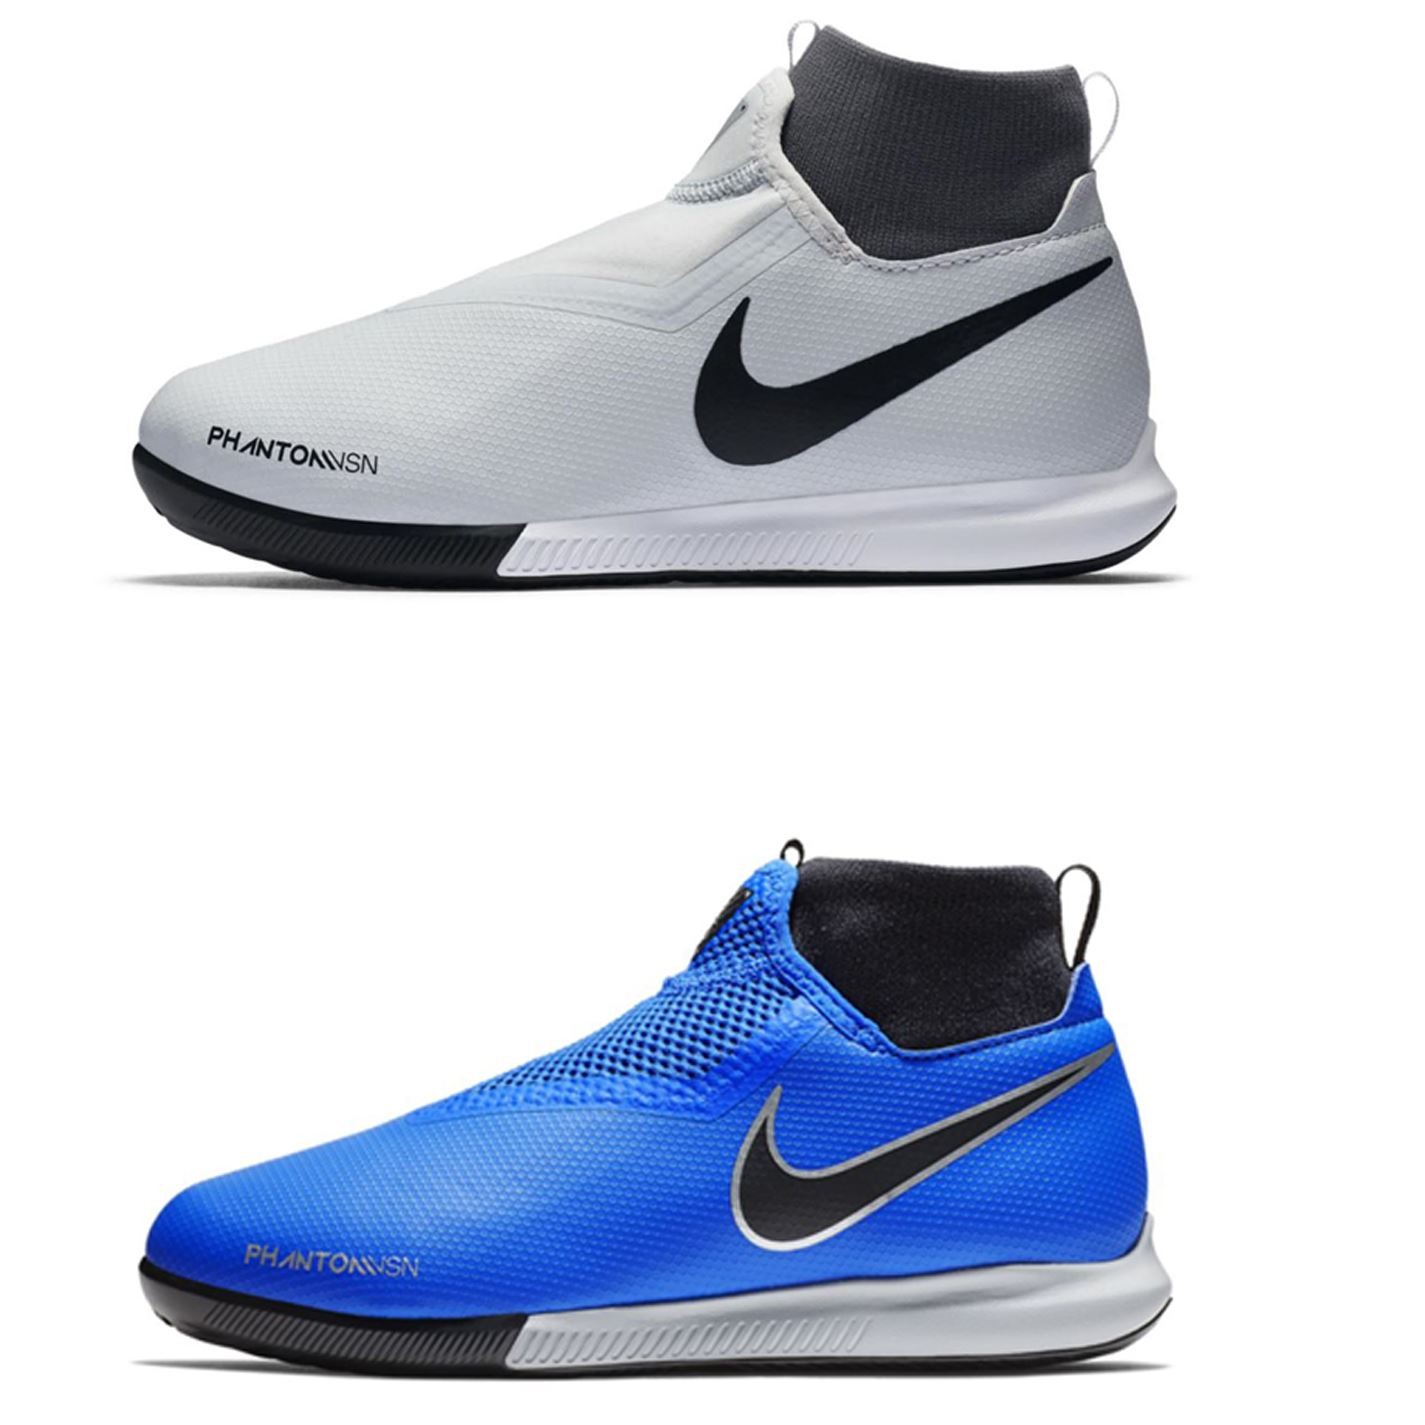 855d3651c Details about Nike Phantom Vision Academy DF Indoor Football Trainers  Juniors Soccer Shoes